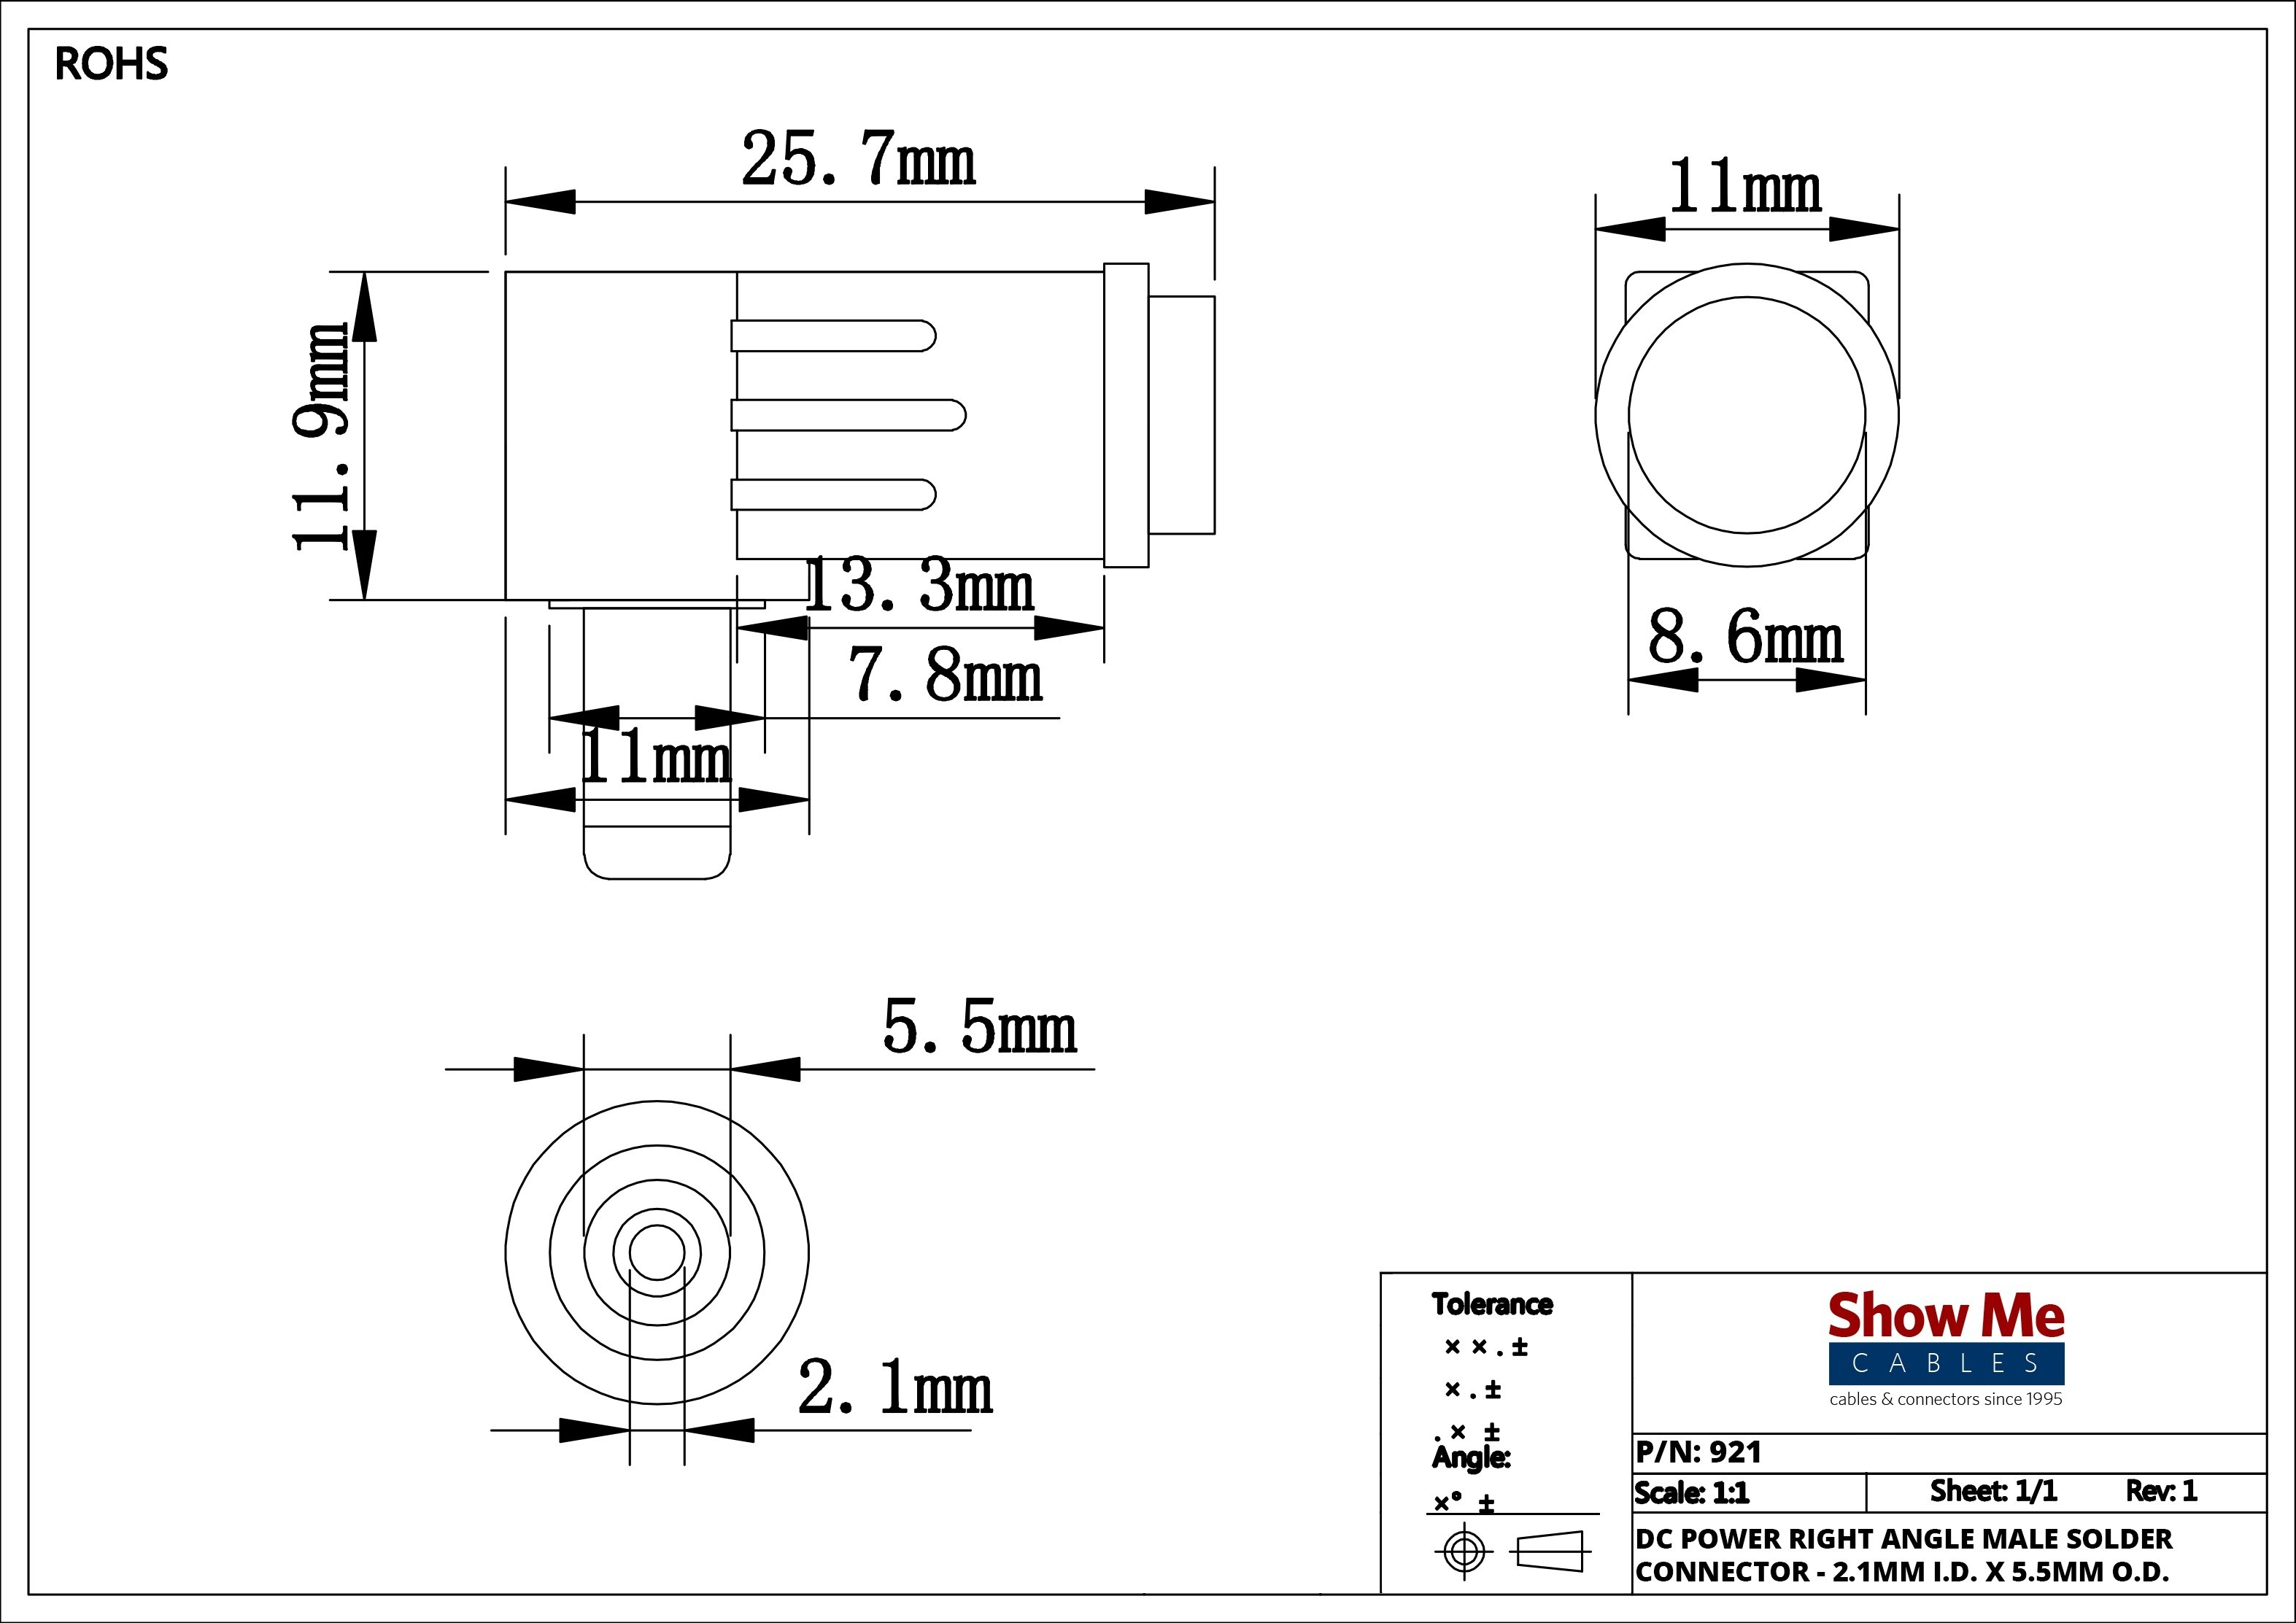 Miller Xmt 3 Wire Diagram Manual Guide Wiring Bobcat Fuel Gauge Diagrams Images Gallery